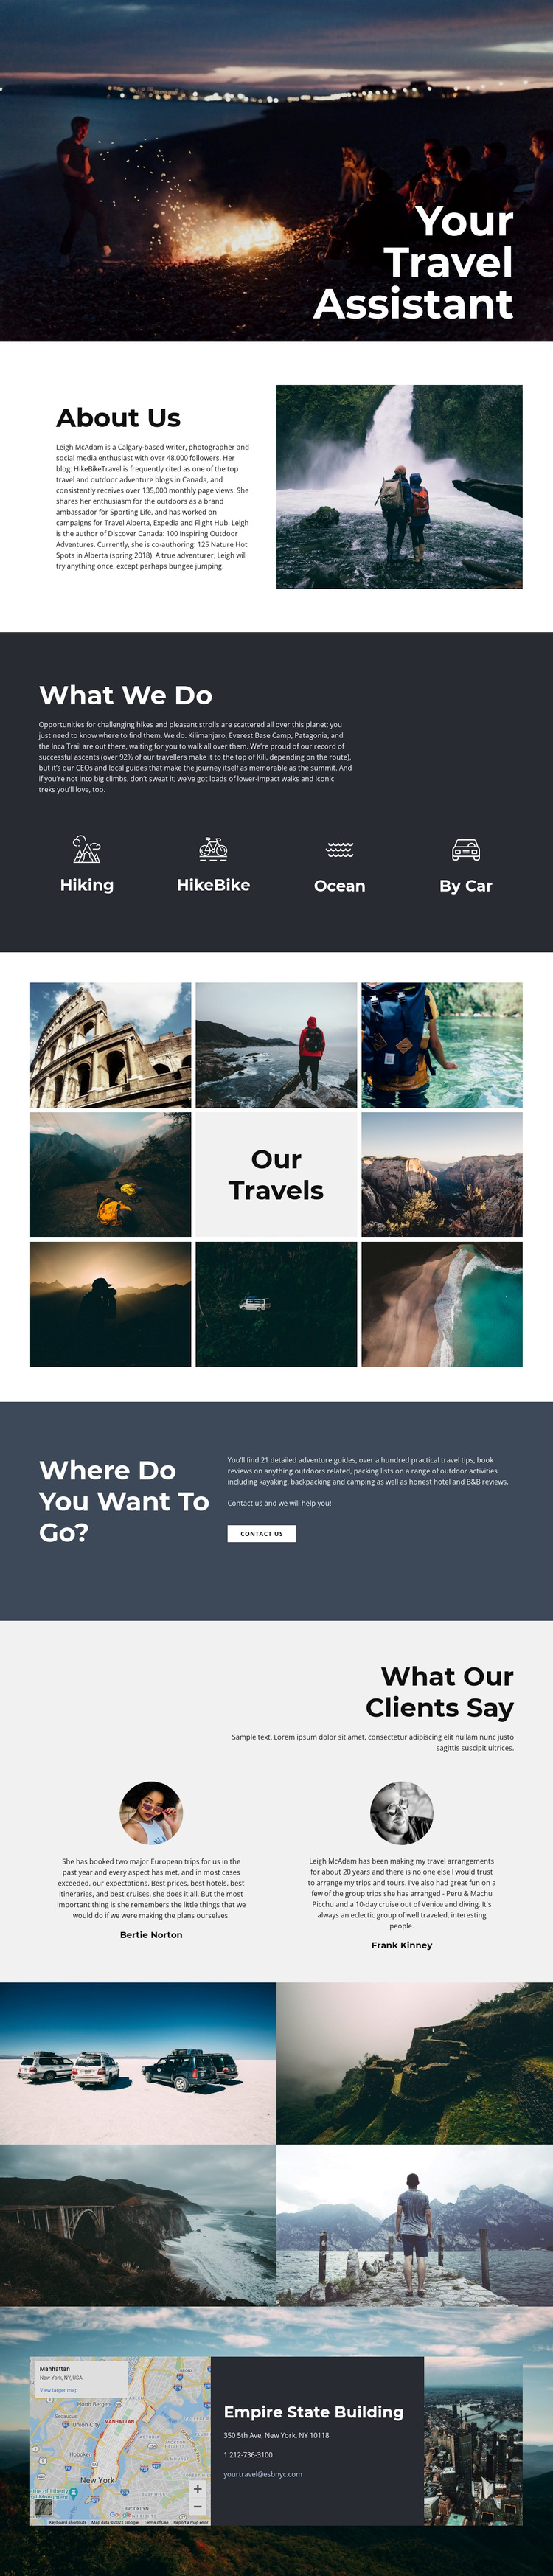 Travel Assistant Template